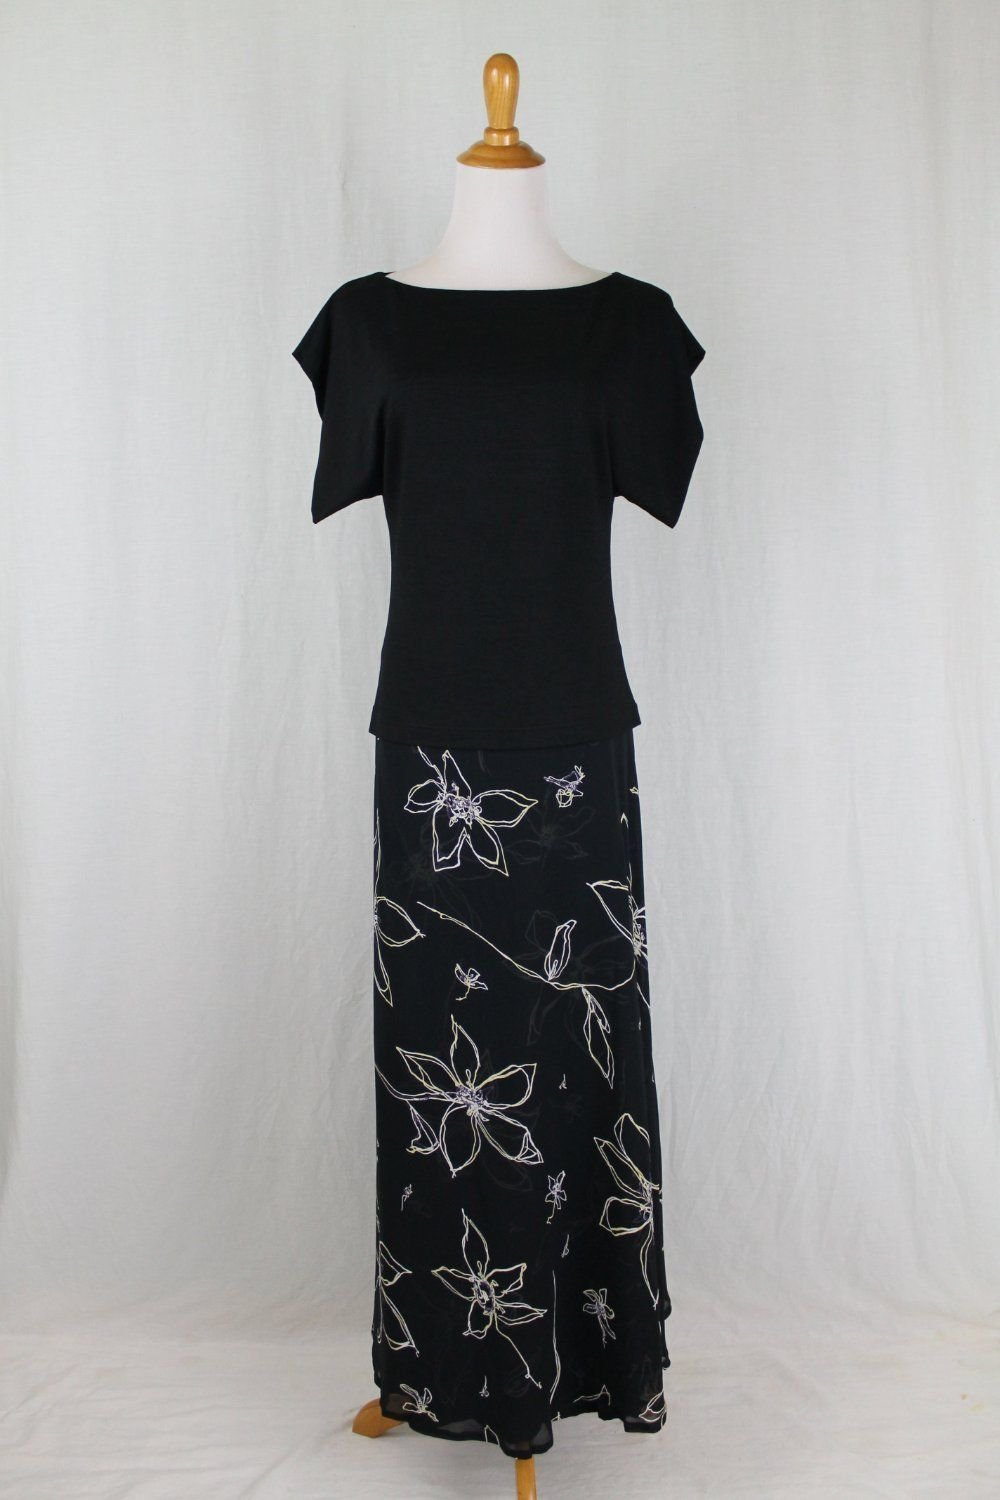 CHACOK Black & White Floral Long Midi Skirt & Top Dress Made in France  S T-1